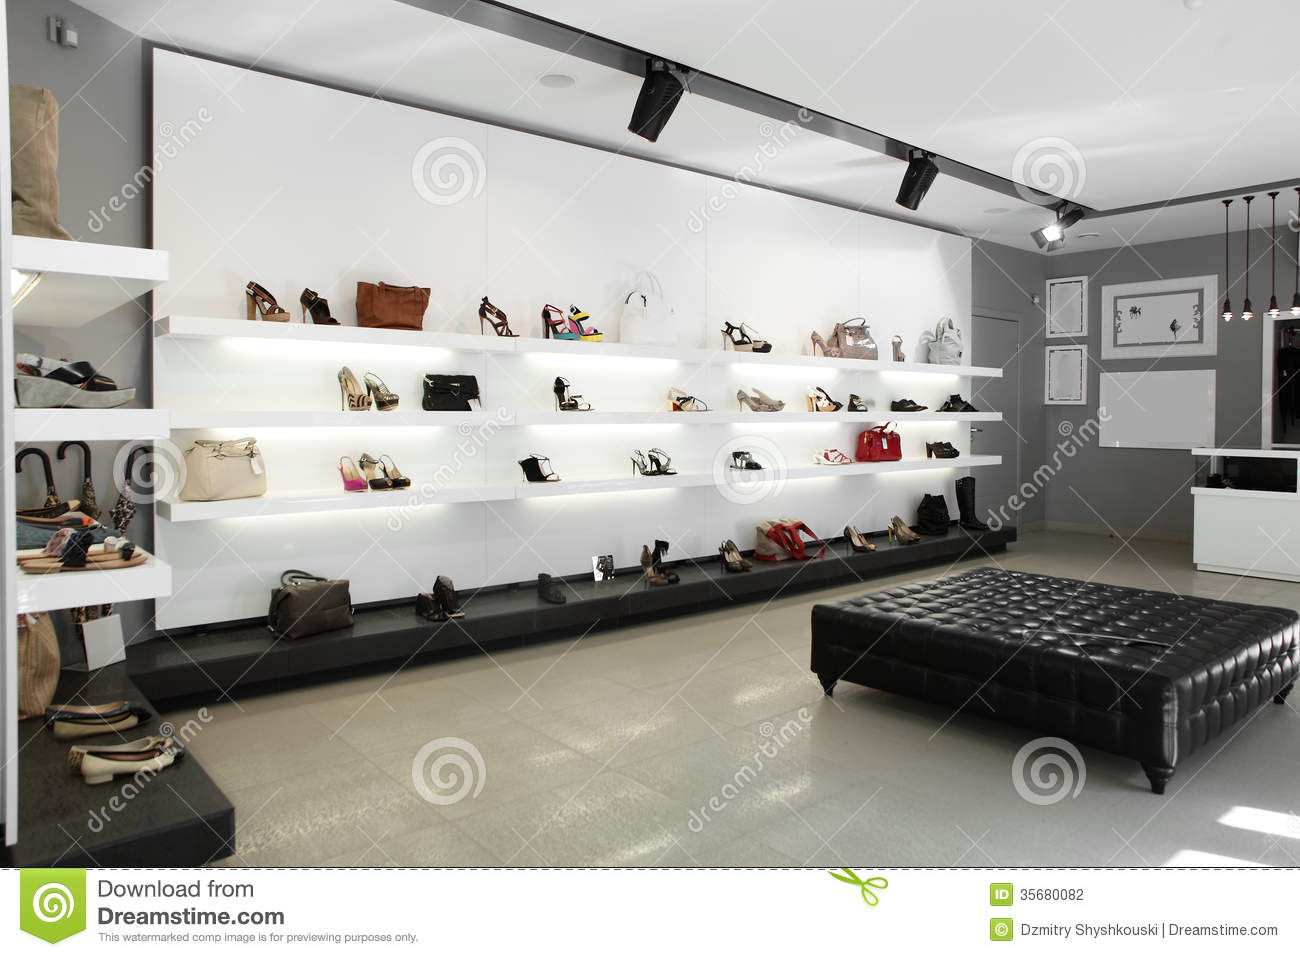 Luxury Shoe Store With Bright Interior Stock Photo Image 35680082